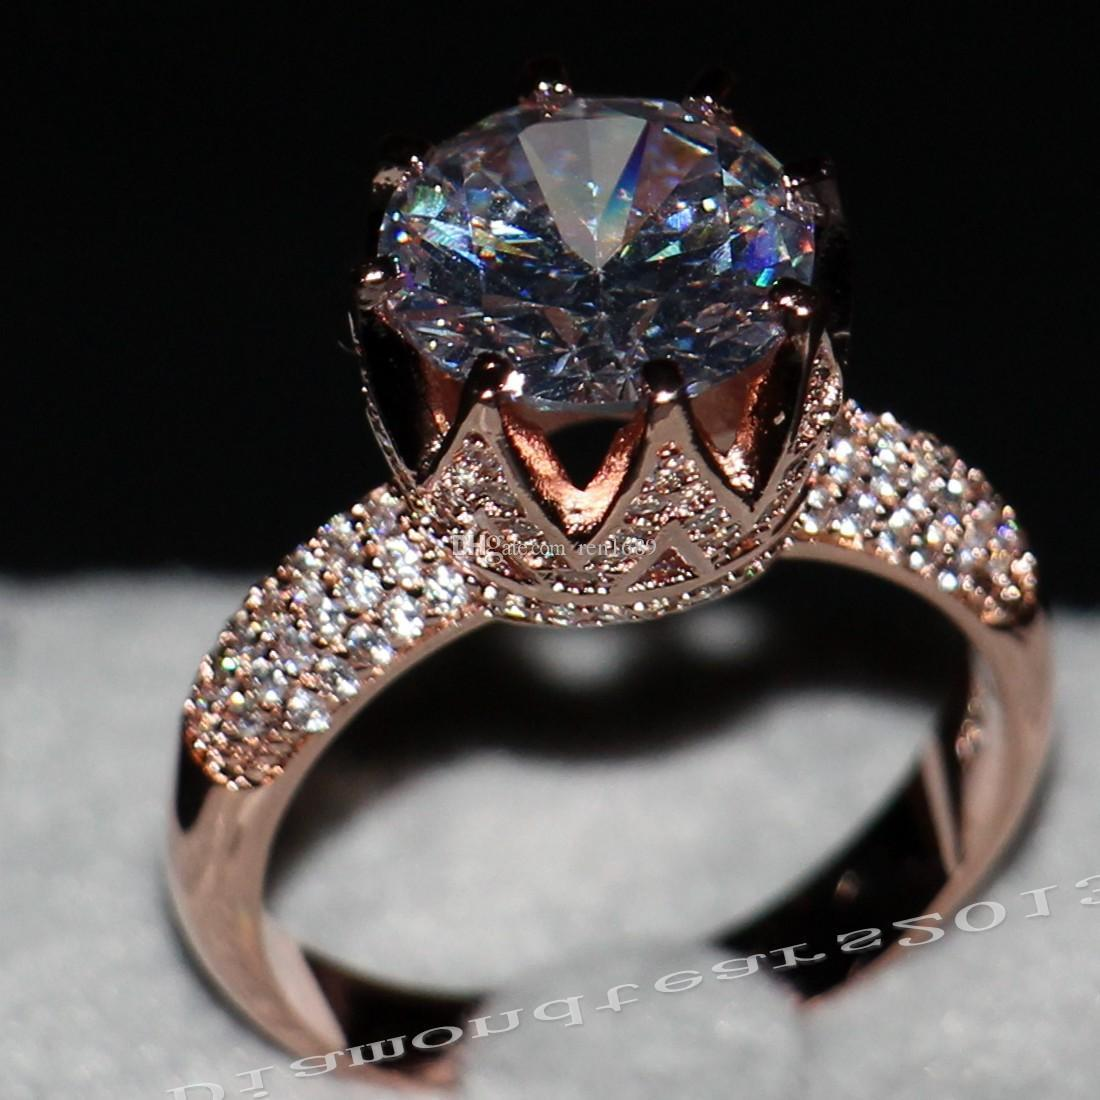 Fine Jewelry Victoria Wieck Luxury Jewelry 8ct Solitaire 11mm white sapphire Simulated Diamond Wedding Rose gold Crown Band Women Rings gift